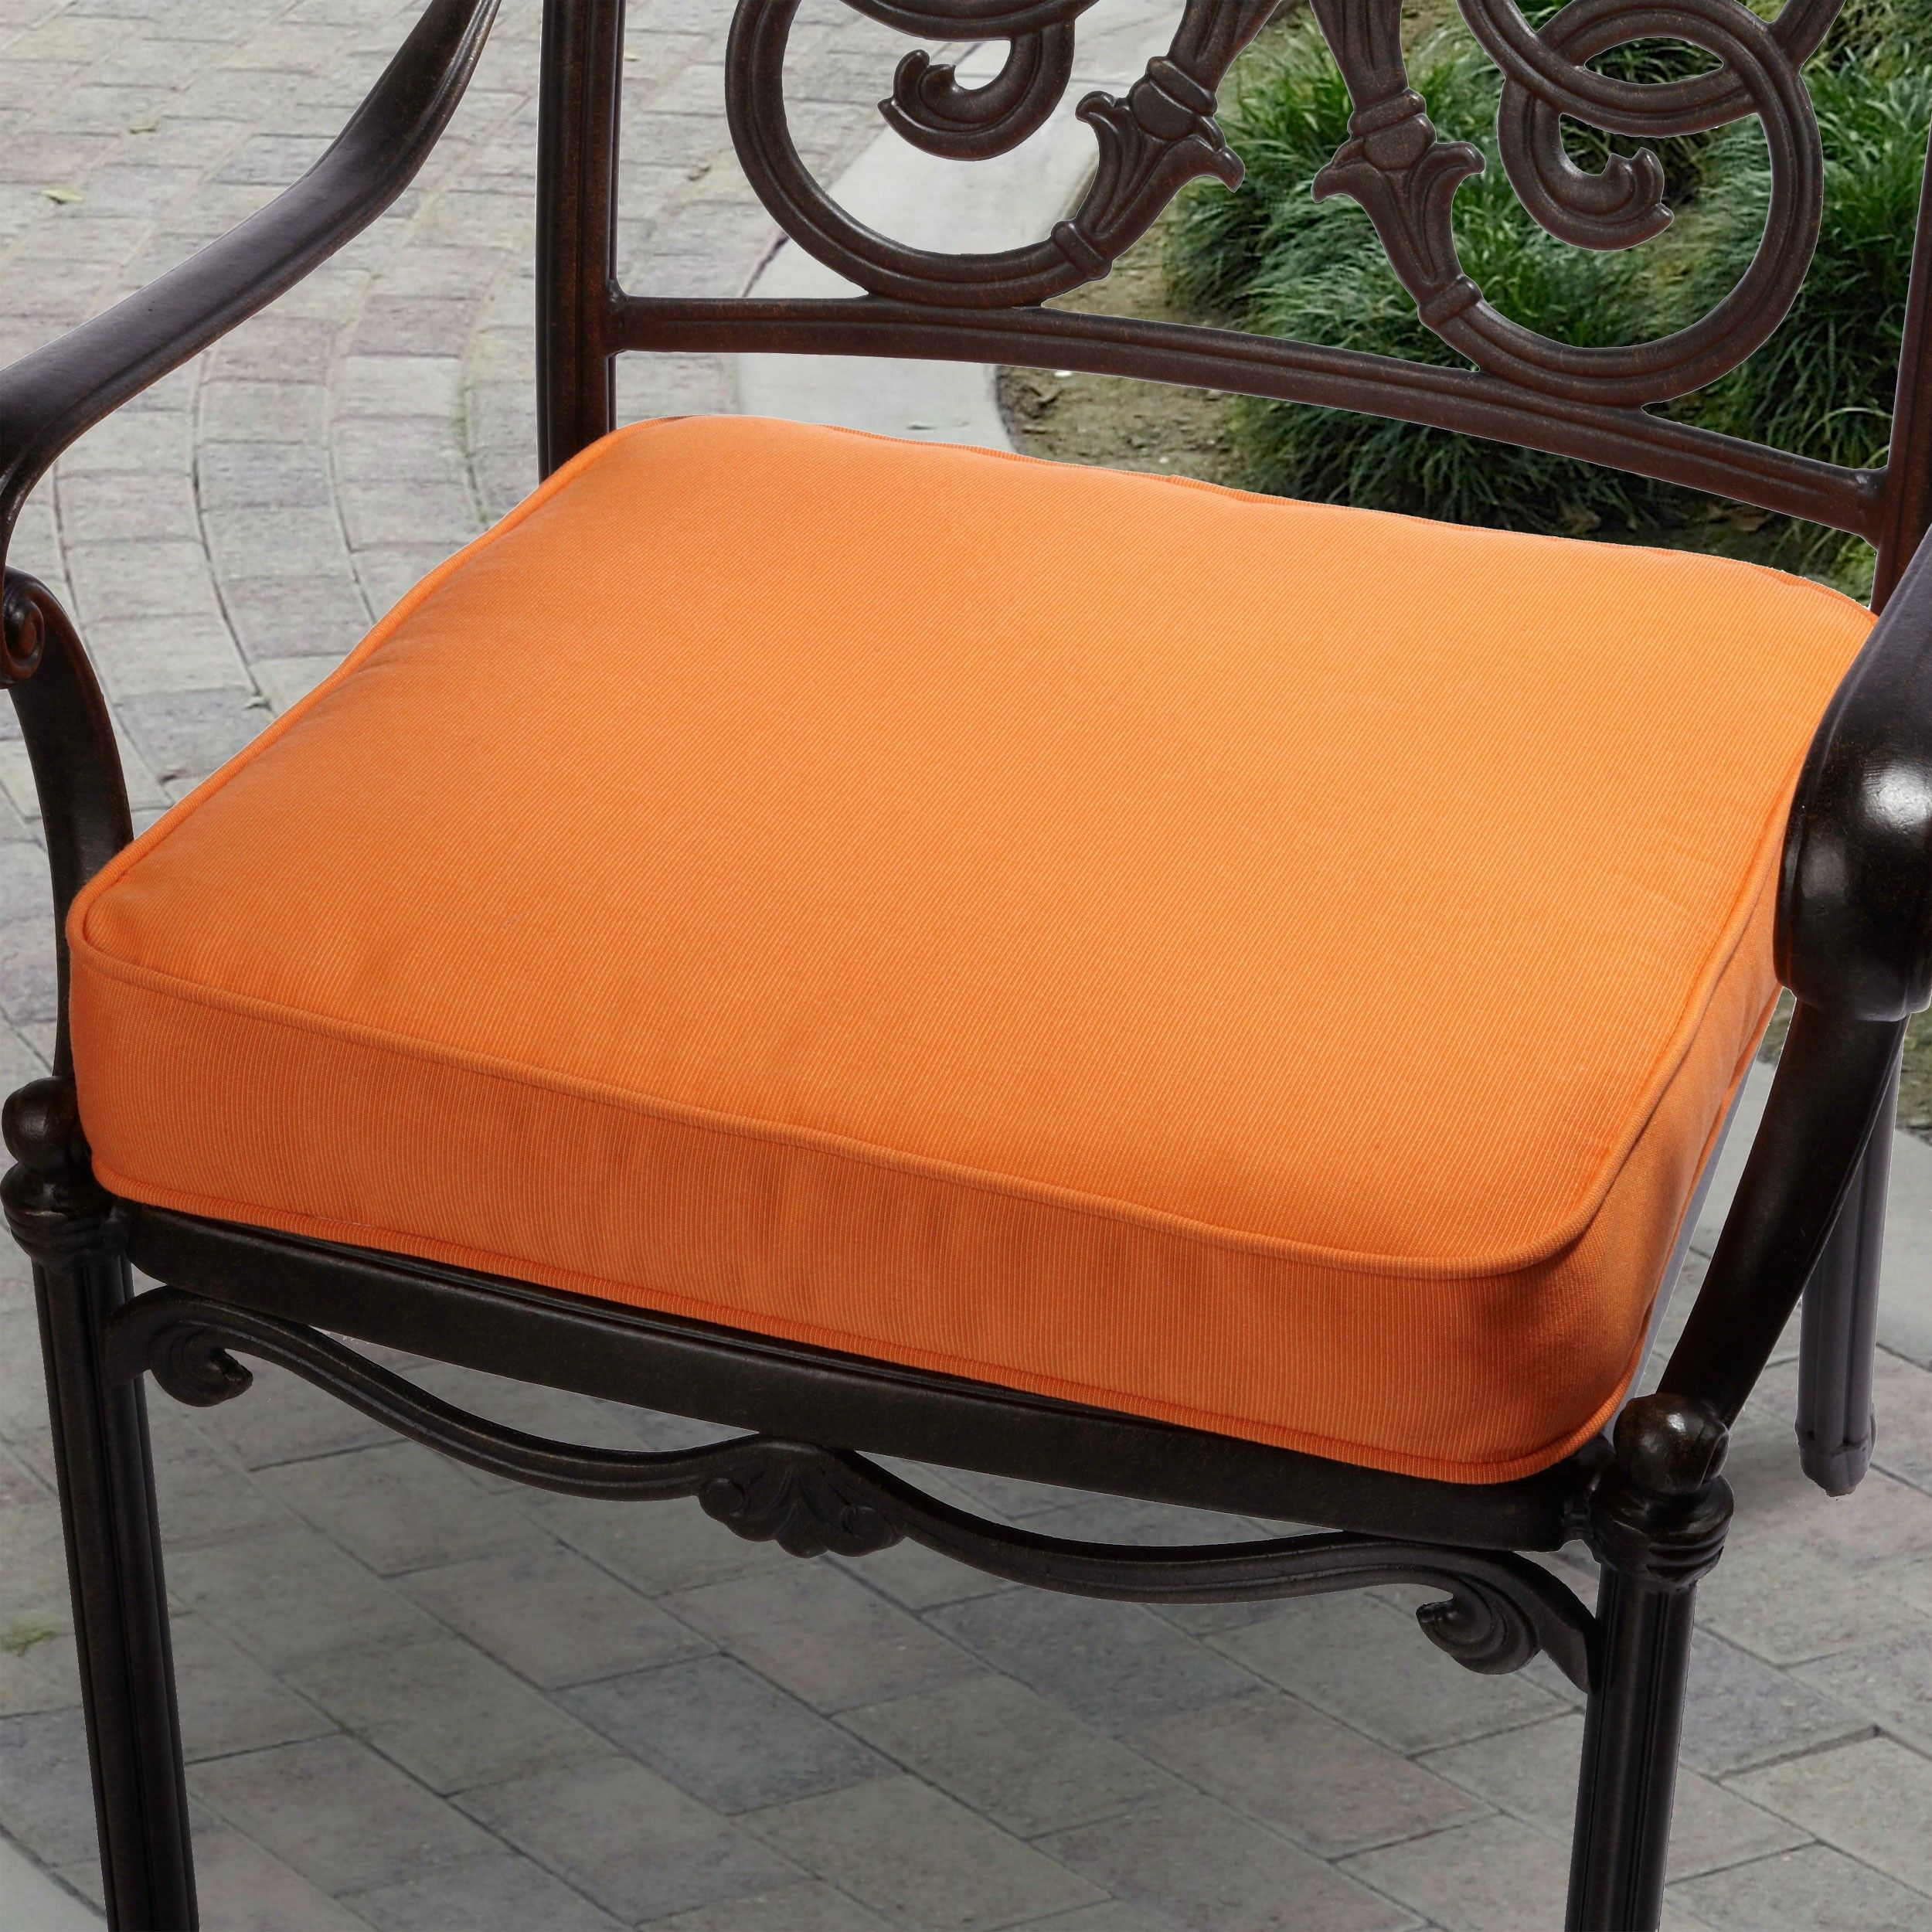 indoor outdoor textured bright 20 inch chair cushion with sunbrella rh pinterest com